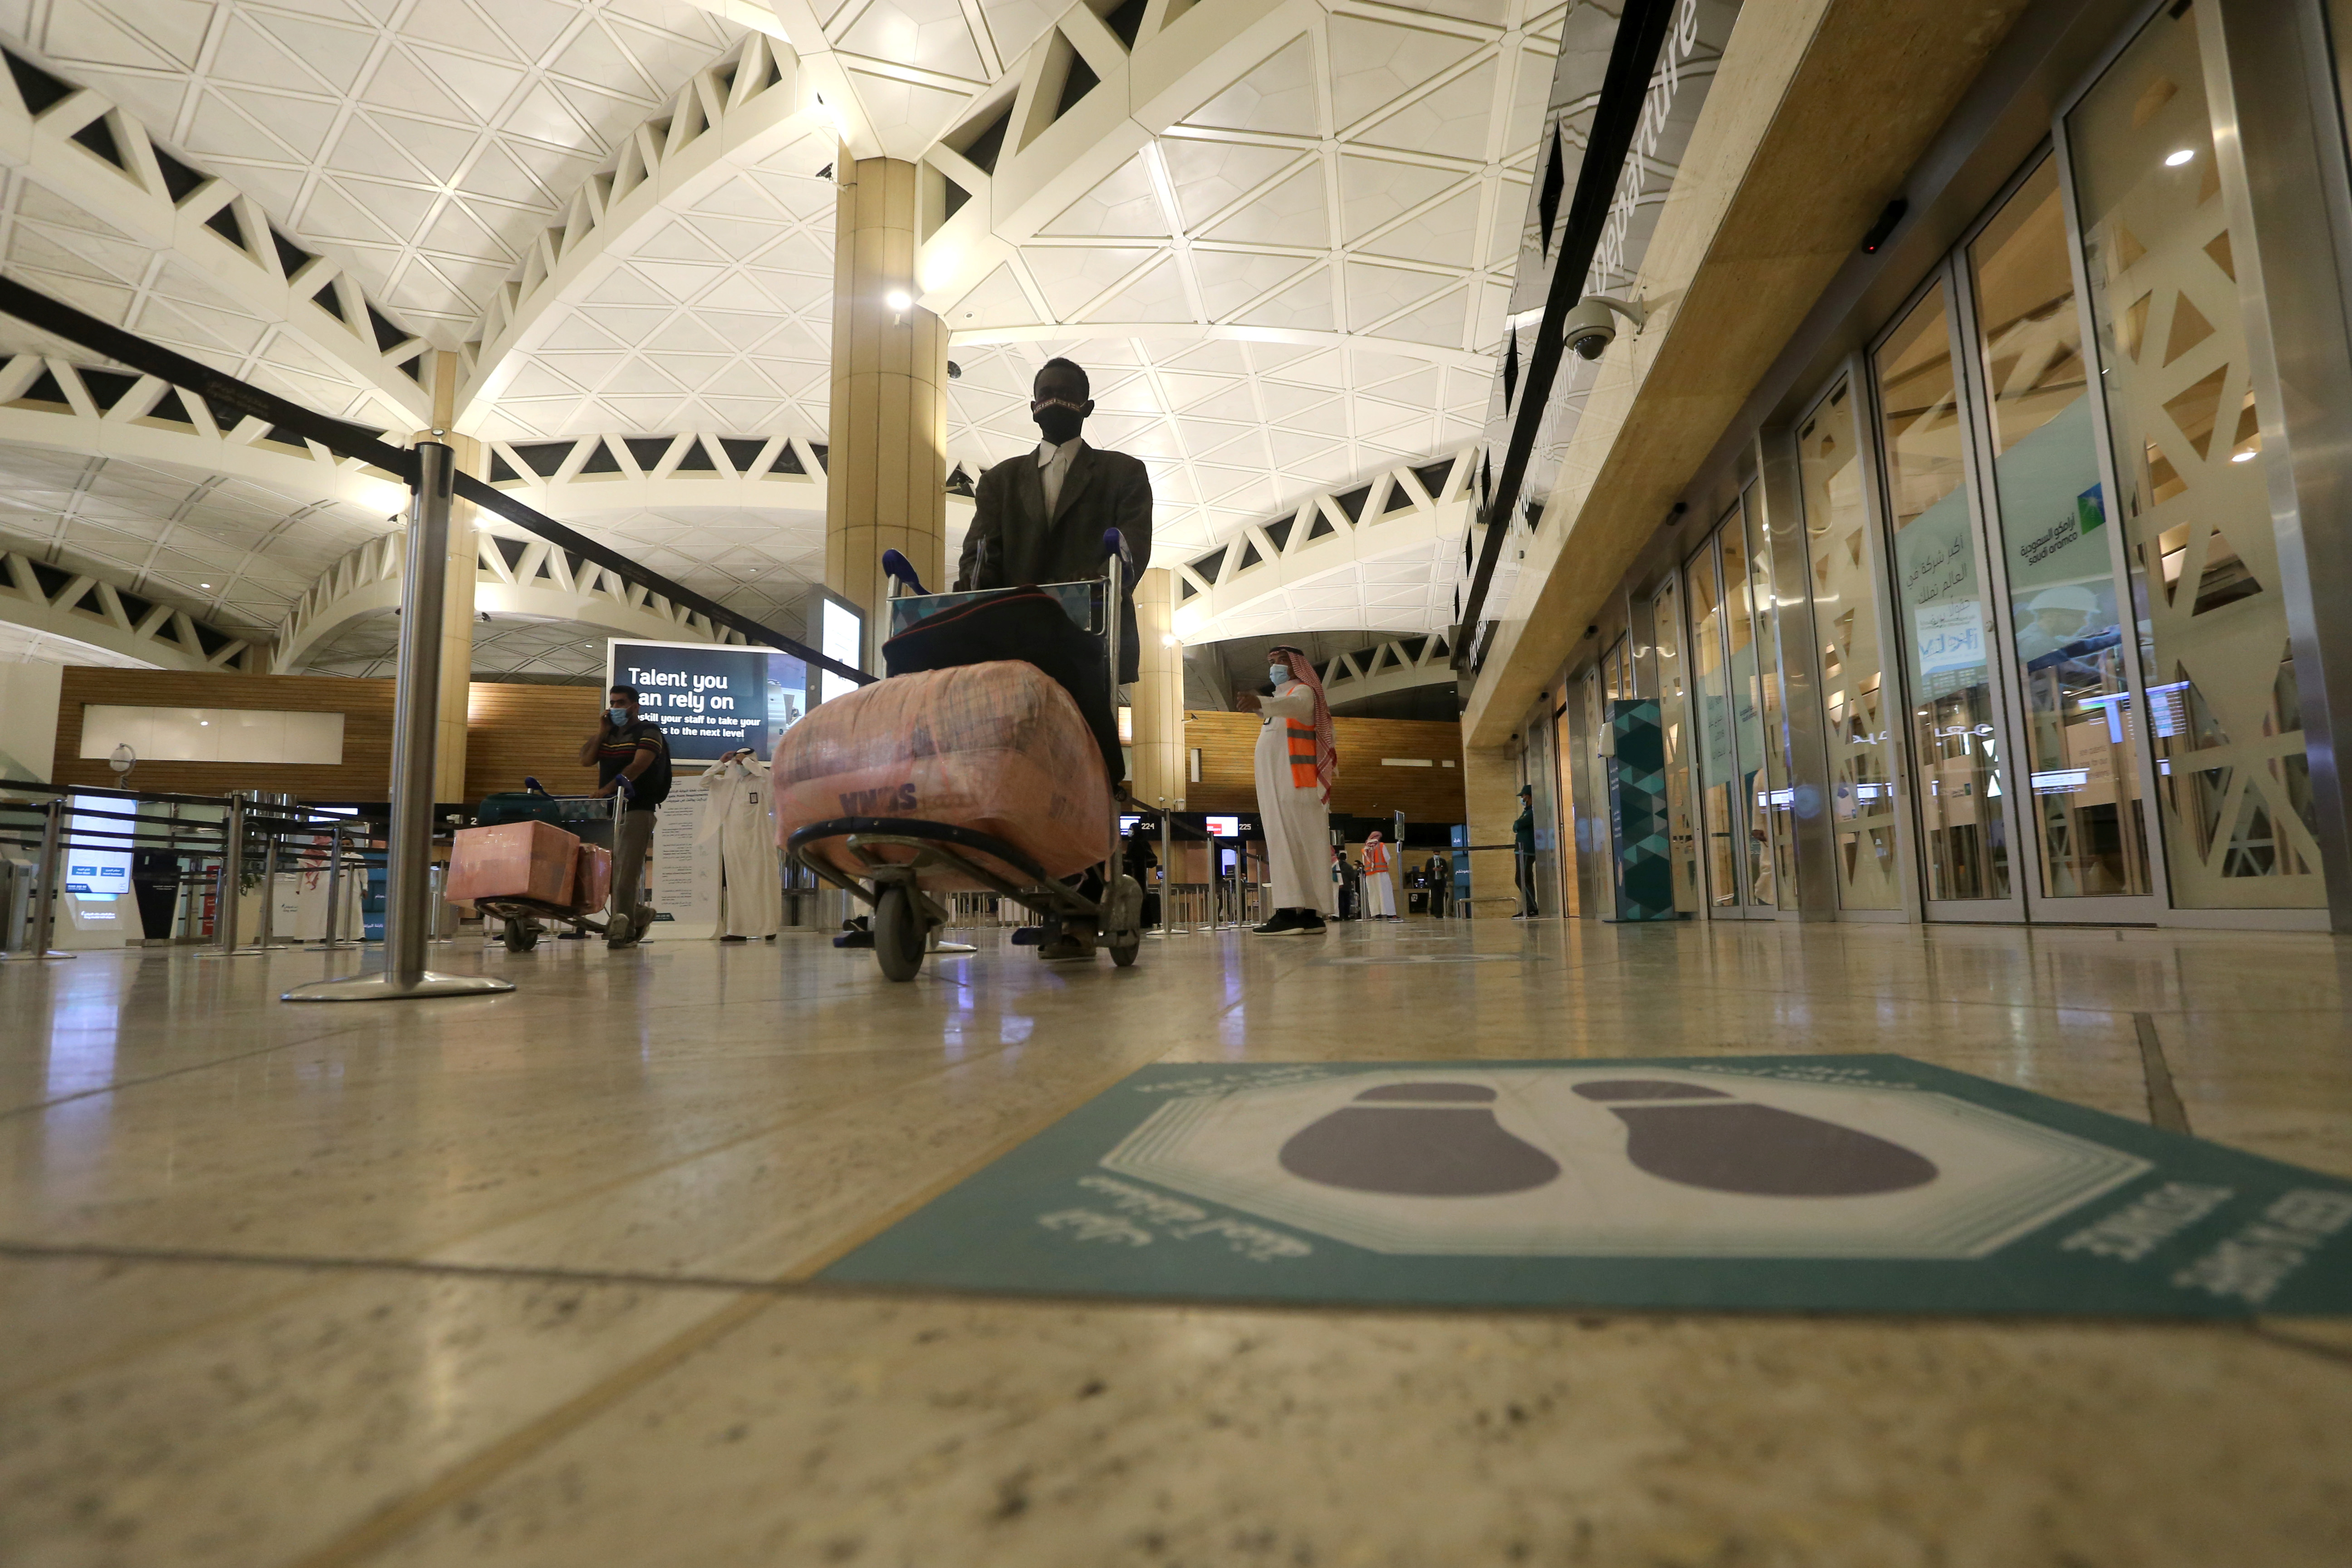 A social distancing sign is seen on the floor as a Saudi man man wearing a face mask walks with his luggage at the King Khalid International Airport, after Saudi authorities lifted the travel ban on its citizens after fourteen months due to coronavirus disease (COVID-19) restrictions, in Riyadh, Saudi Arabia, May 16, 2021. REUTERS/Ahmed Yosri